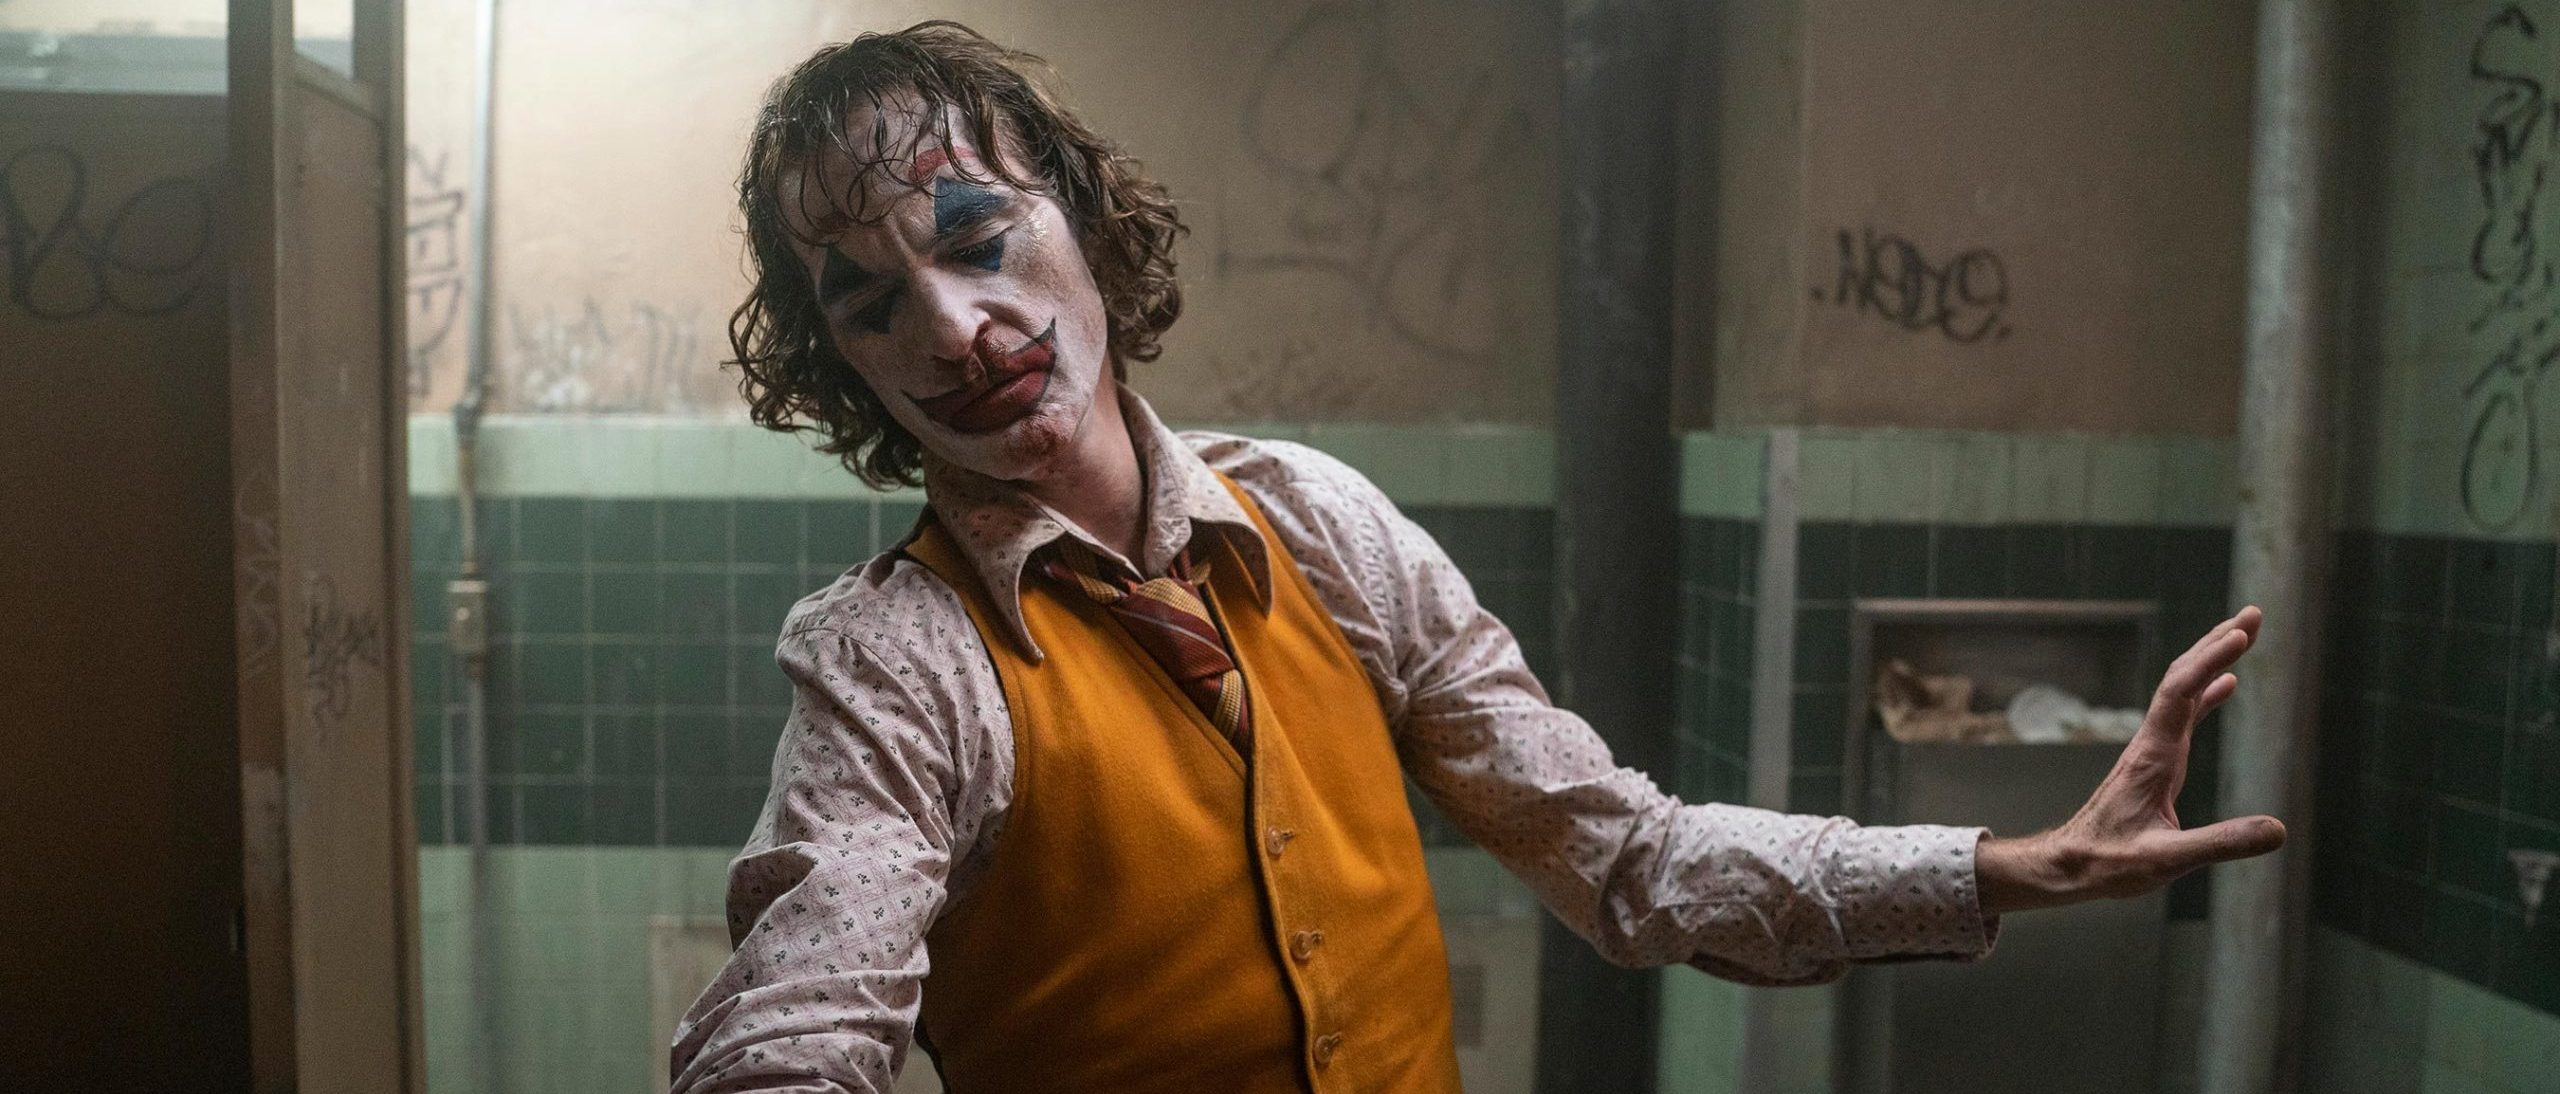 Joaquin Phoenix as Joker in Todd Phillips' Joker